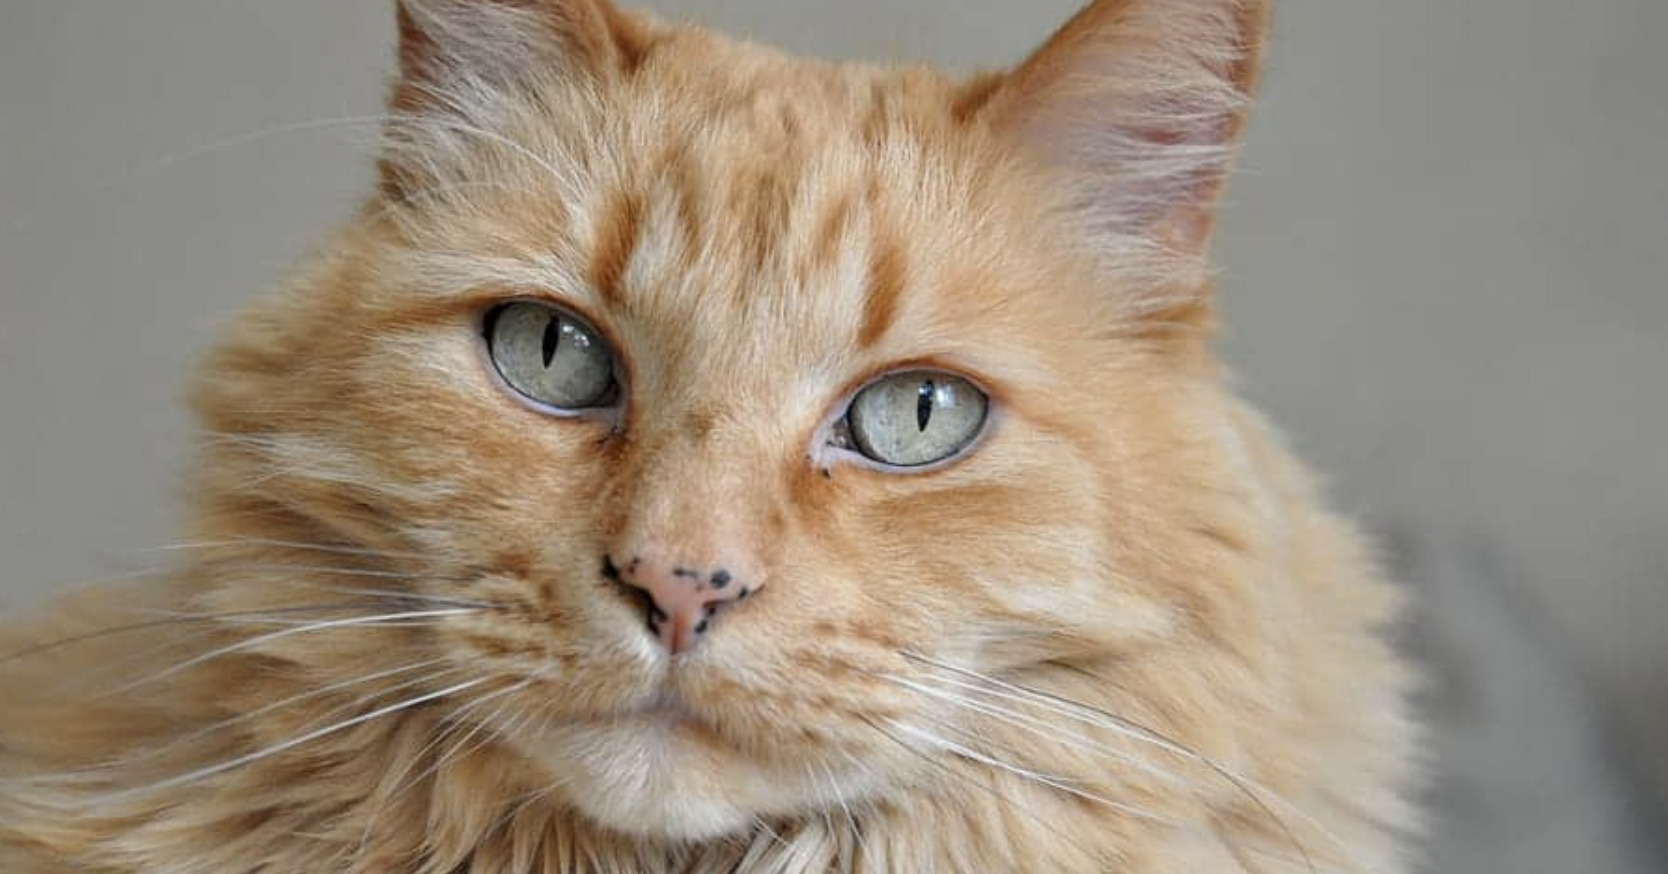 Did You Know Cats Can Get Freckles?